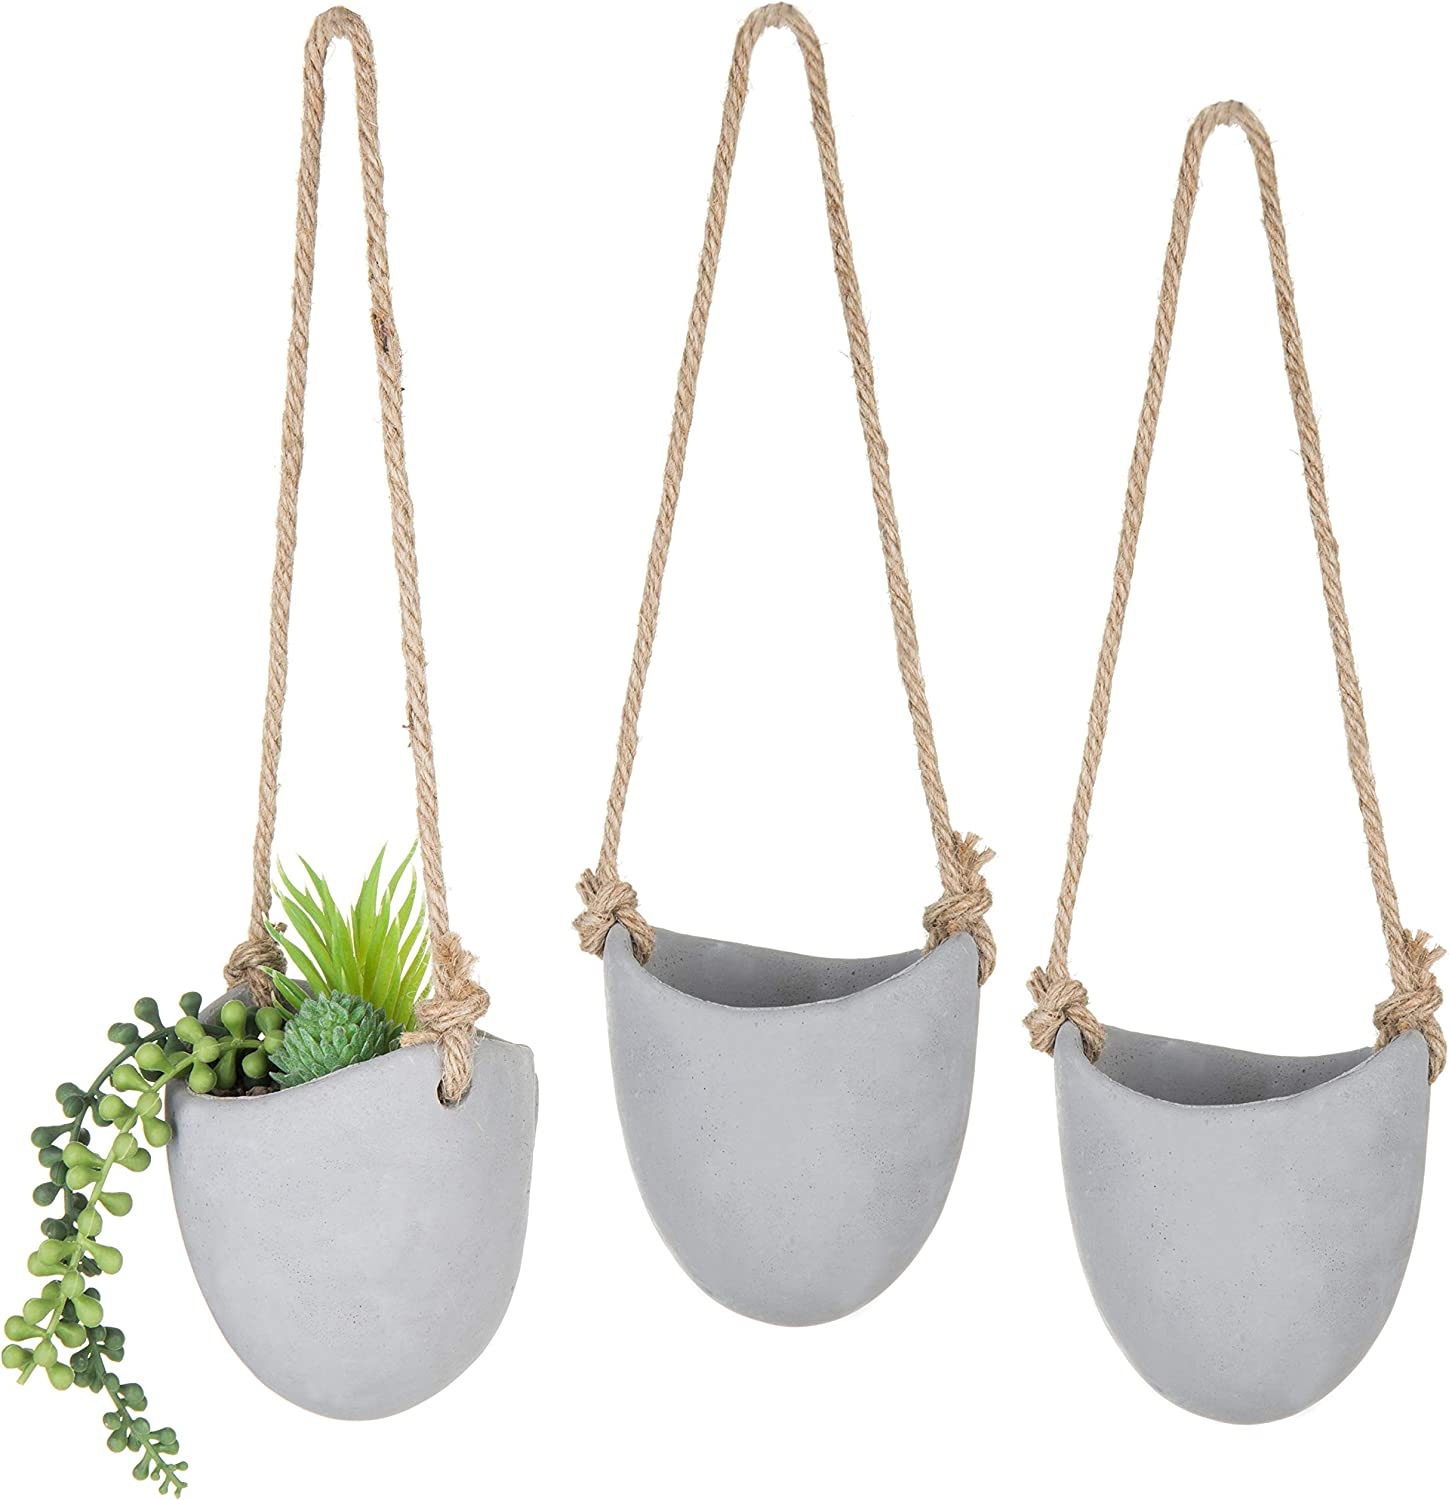 Max 78% OFF MyGift 4-inch Albuquerque Mall Rustic Gray Cement Wall-Hanging Pl Succulent Cacti